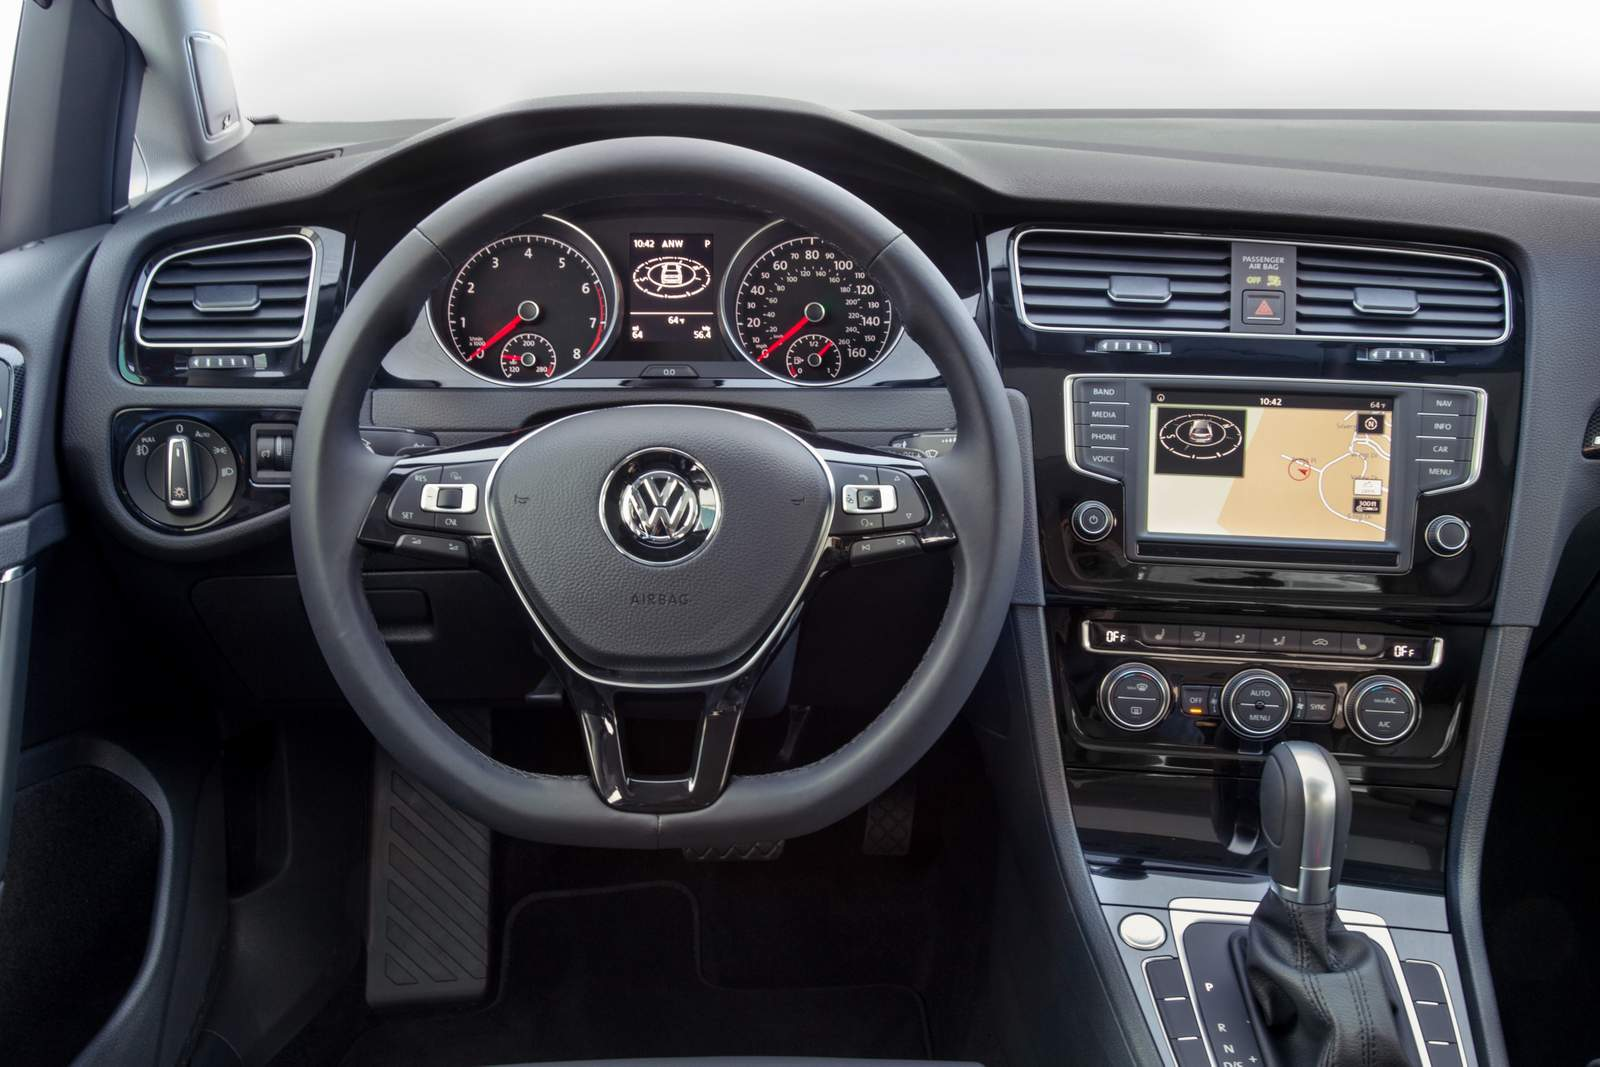 VW Golf TSI Highline  2017 - interior